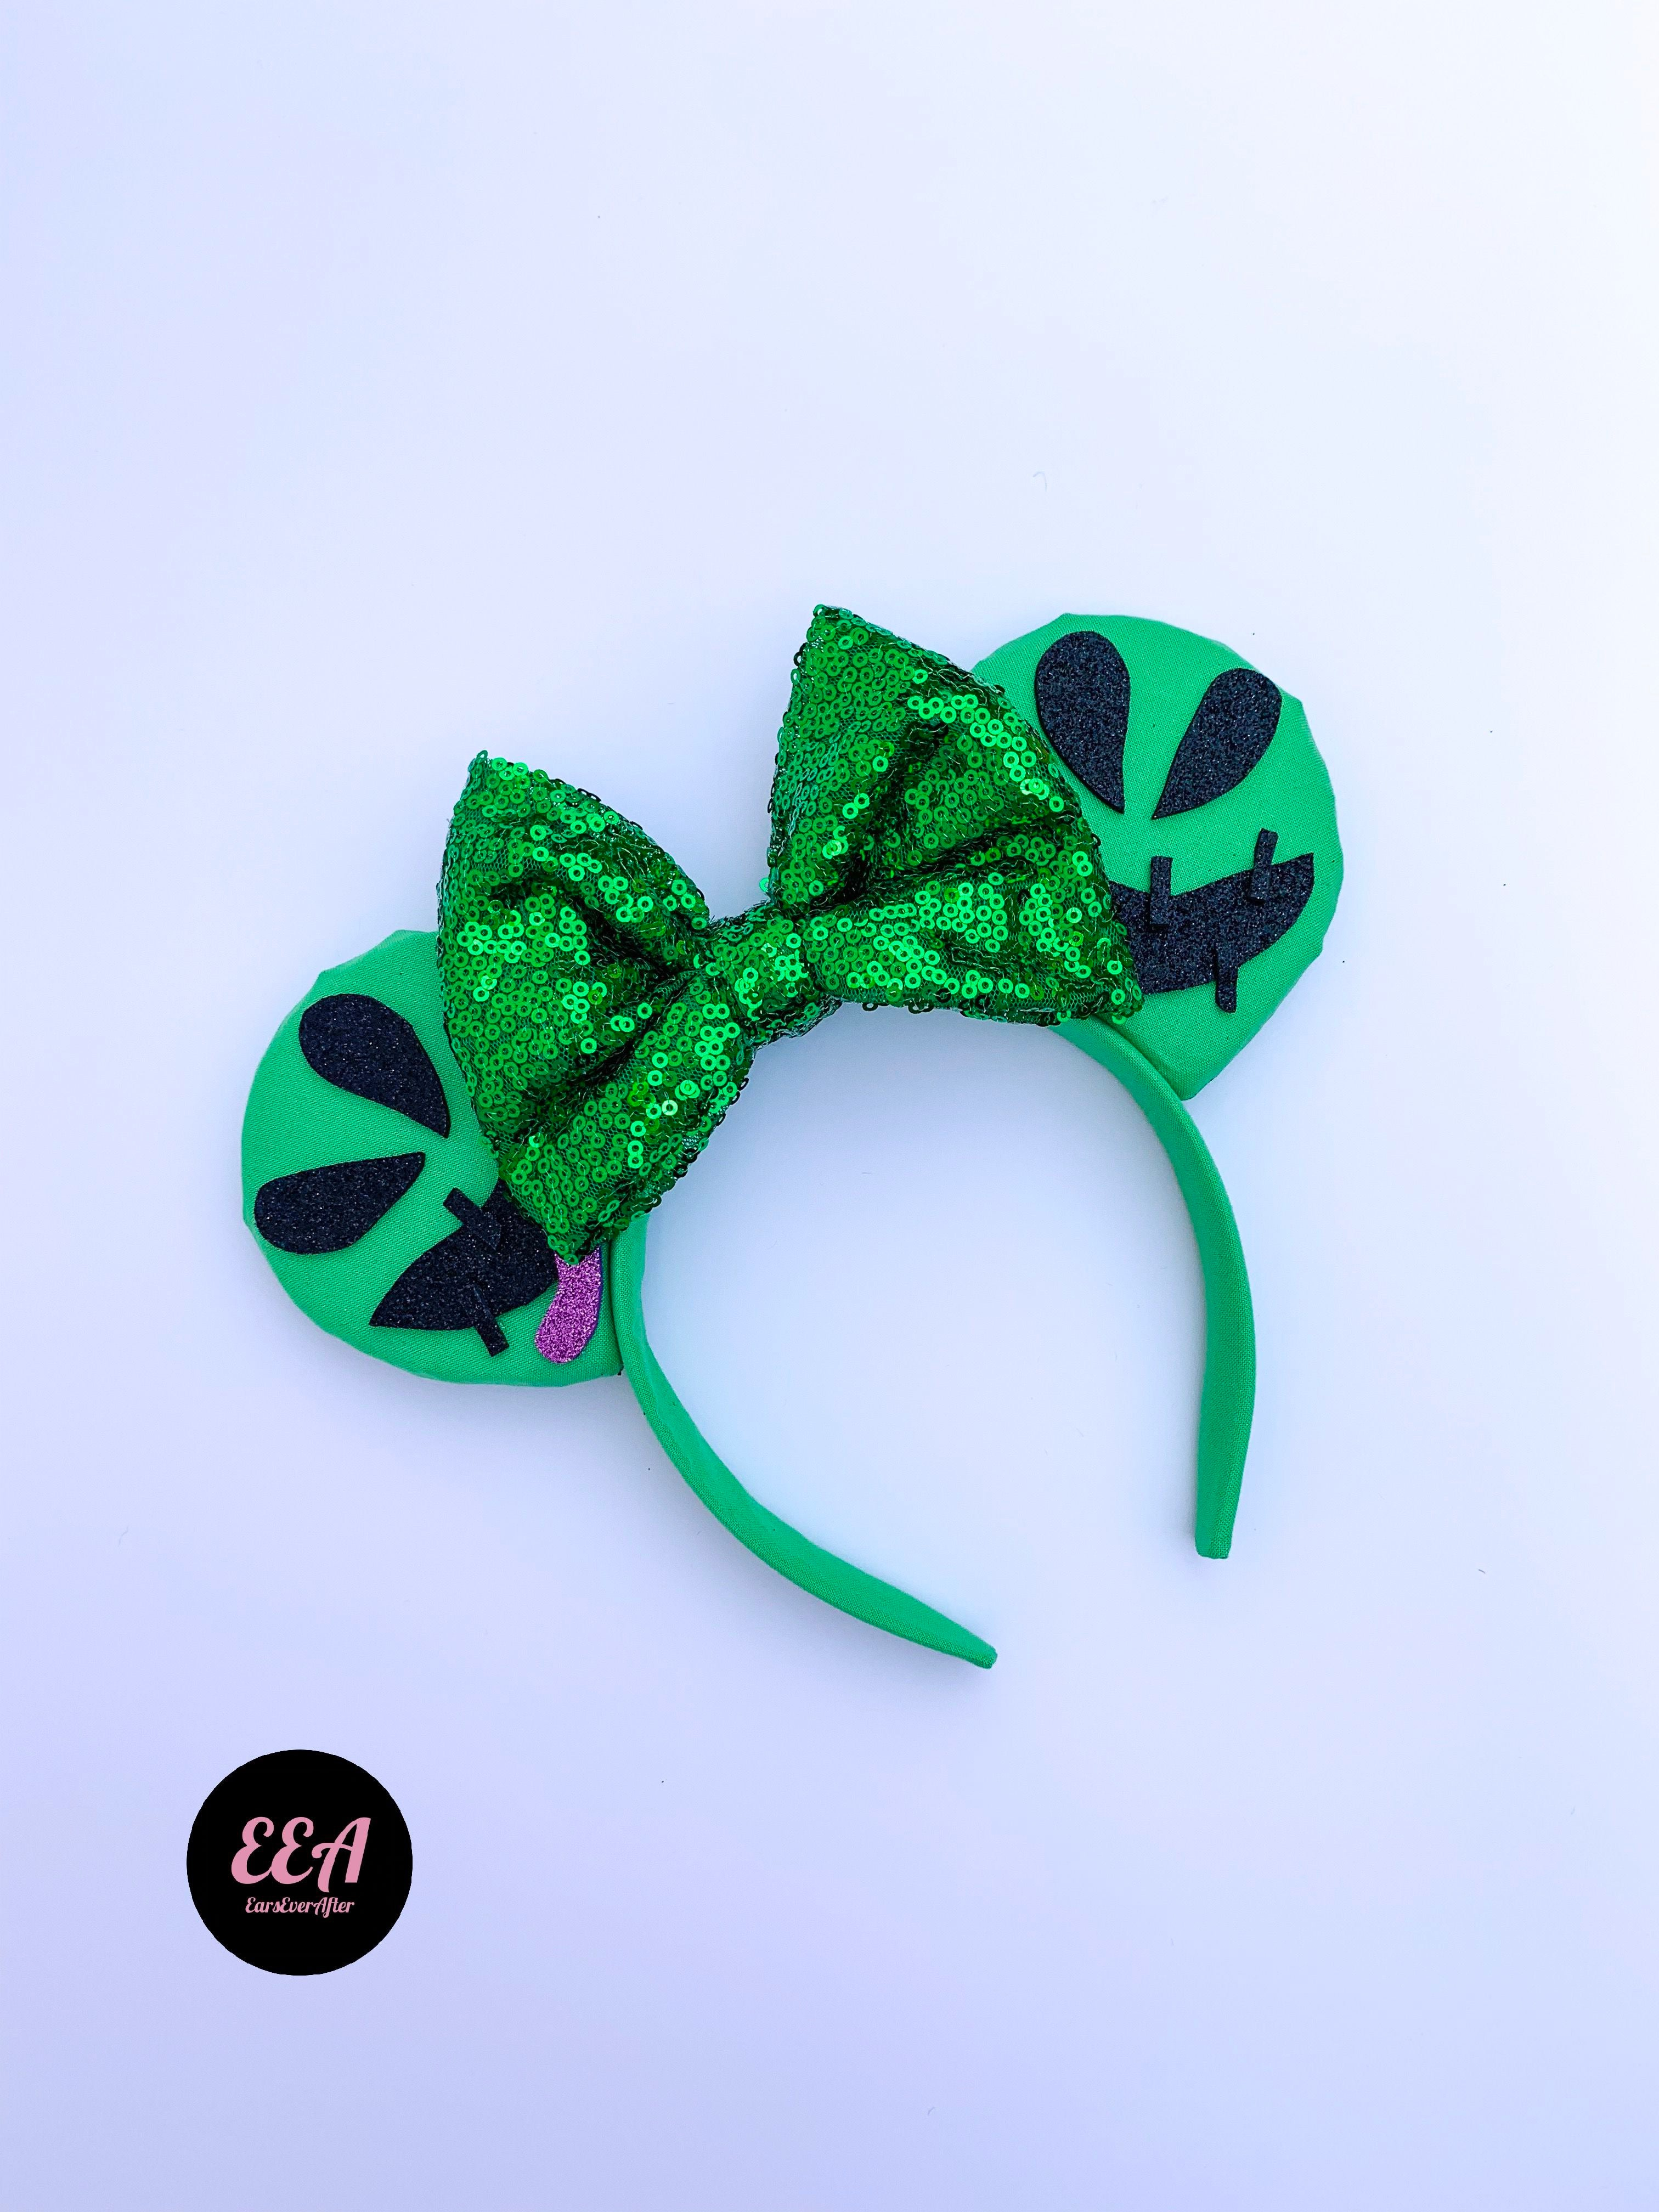 Ears Ever After, Disney Ears, Minnie Mouse Ears, Mickey Ears, Custom Mickey Ears, Mouse Ears, UK Disney Ears, Minnie Ears, Mickey Ears, Disney, Halloween Mouse Ears, Halloween Villains, Disney Villains Ears